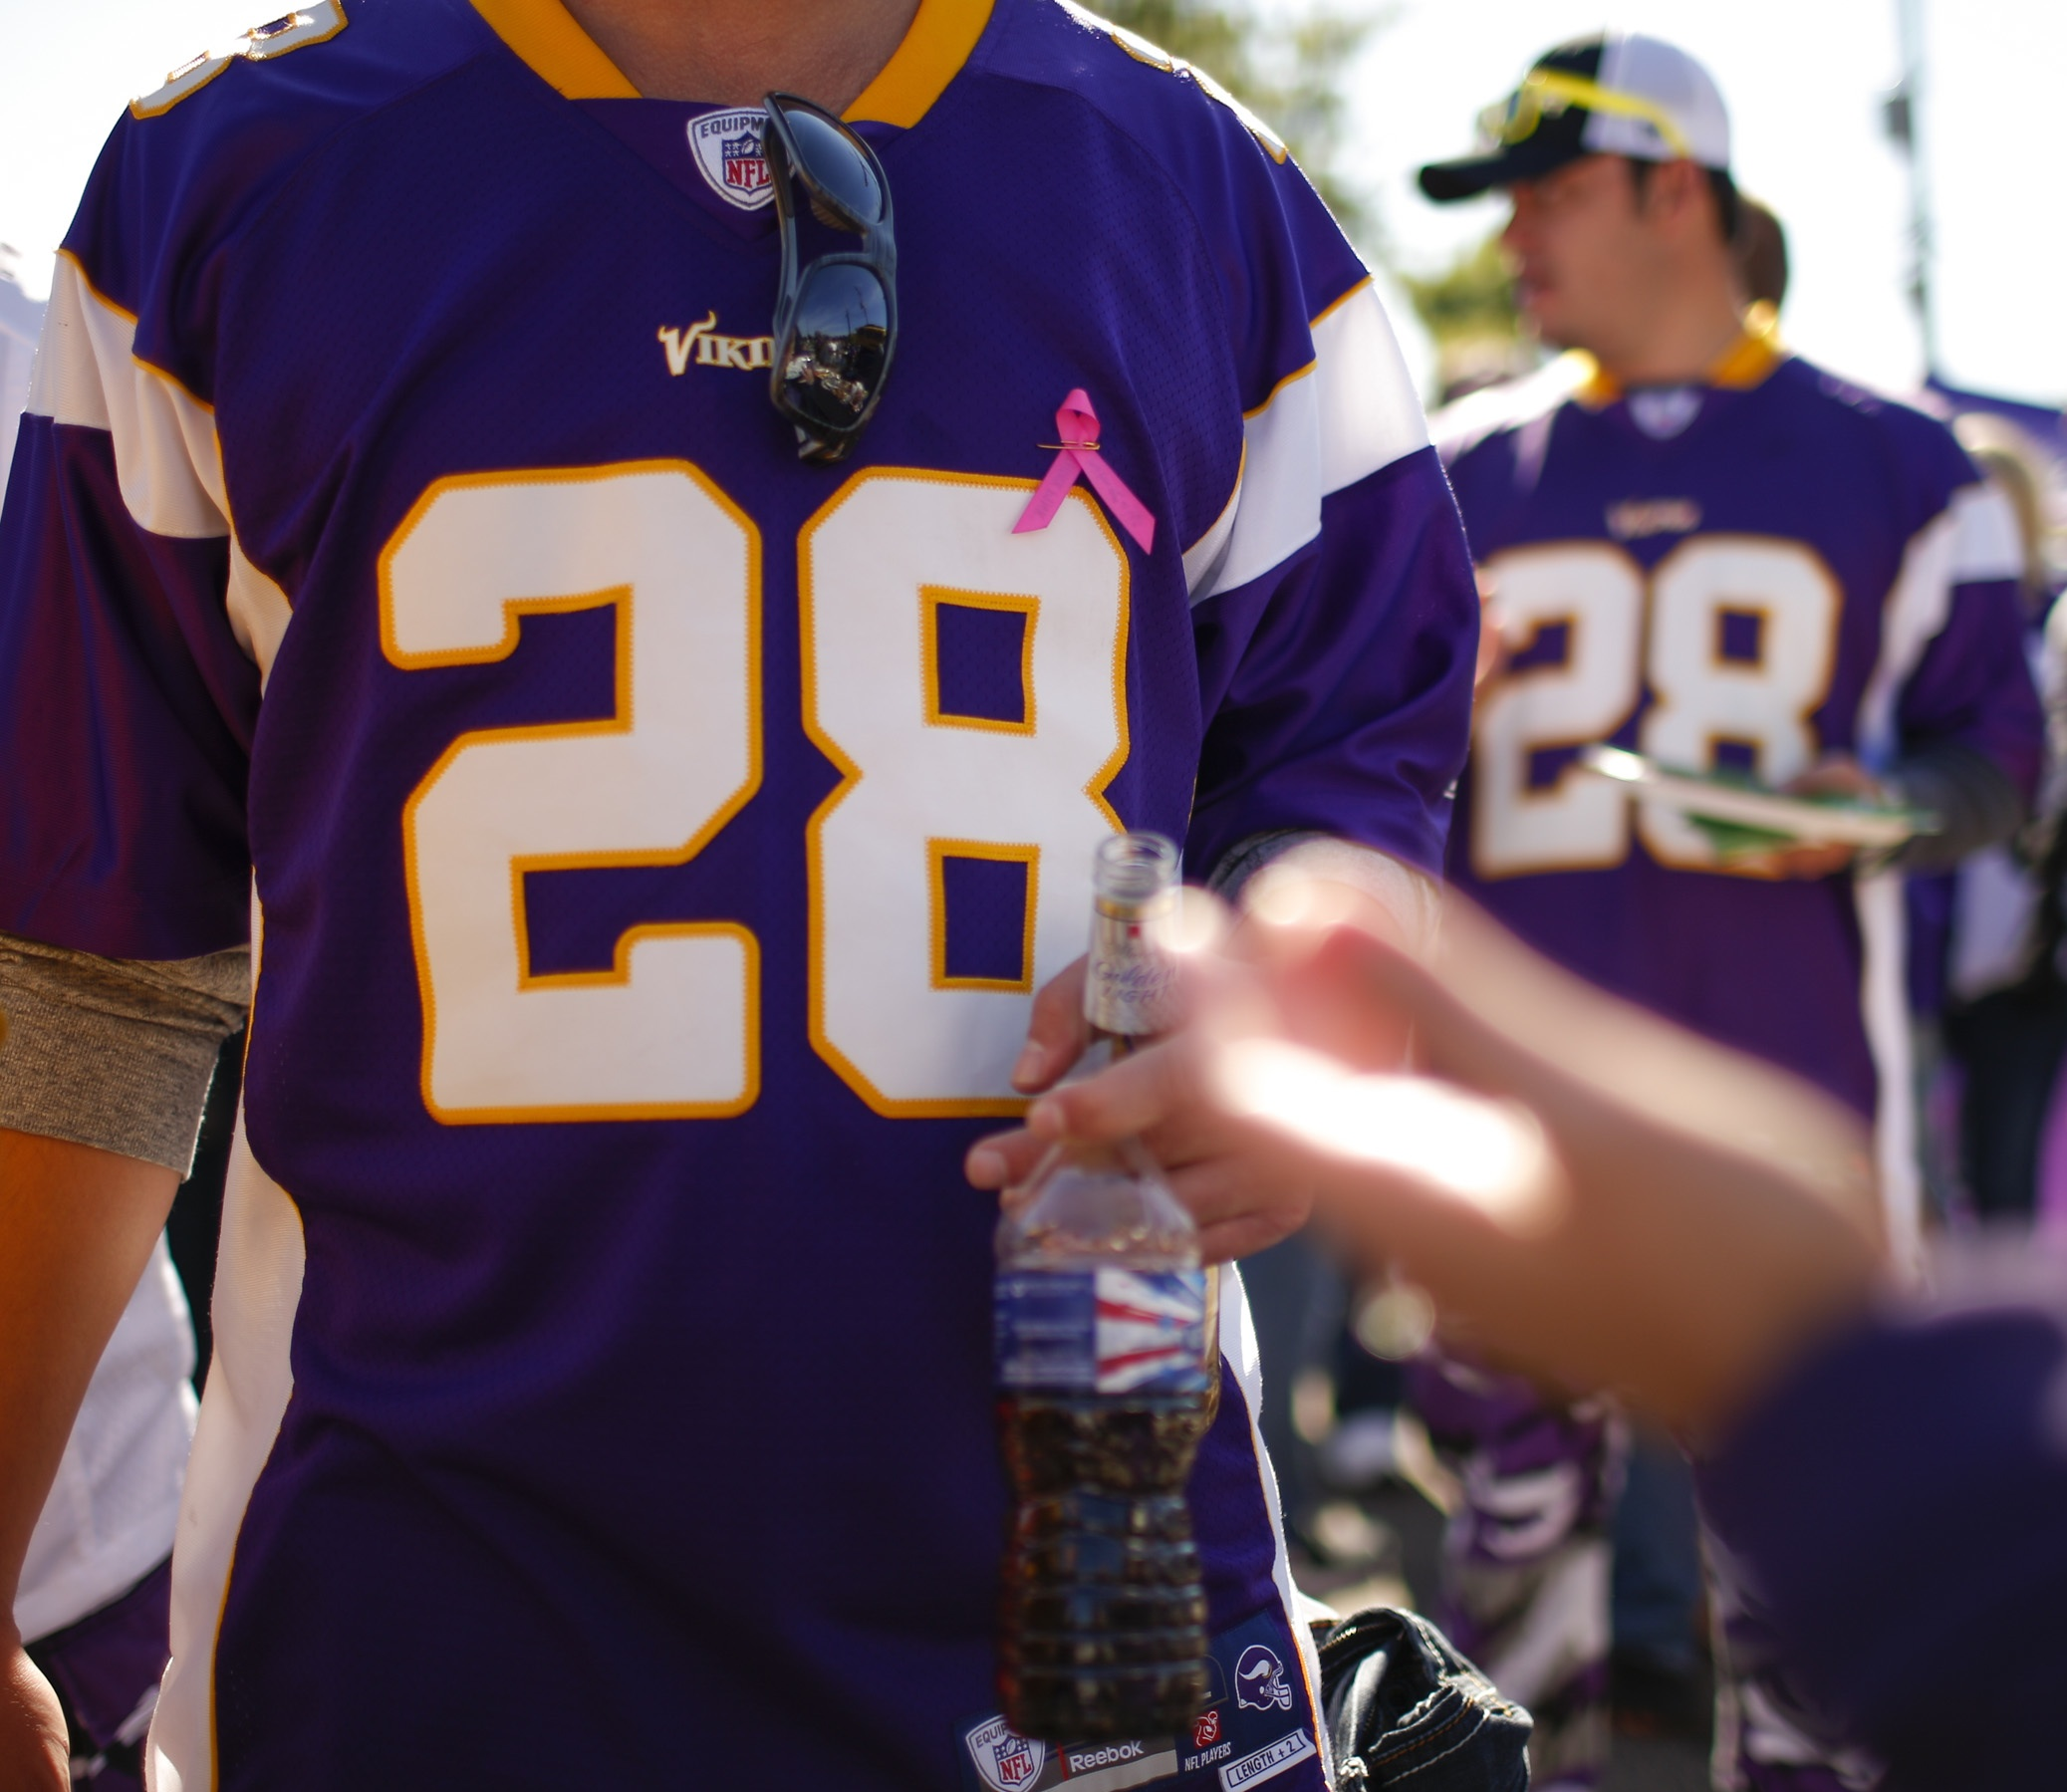 Vikings won't be doing an Adrian Peterson jersey exchange